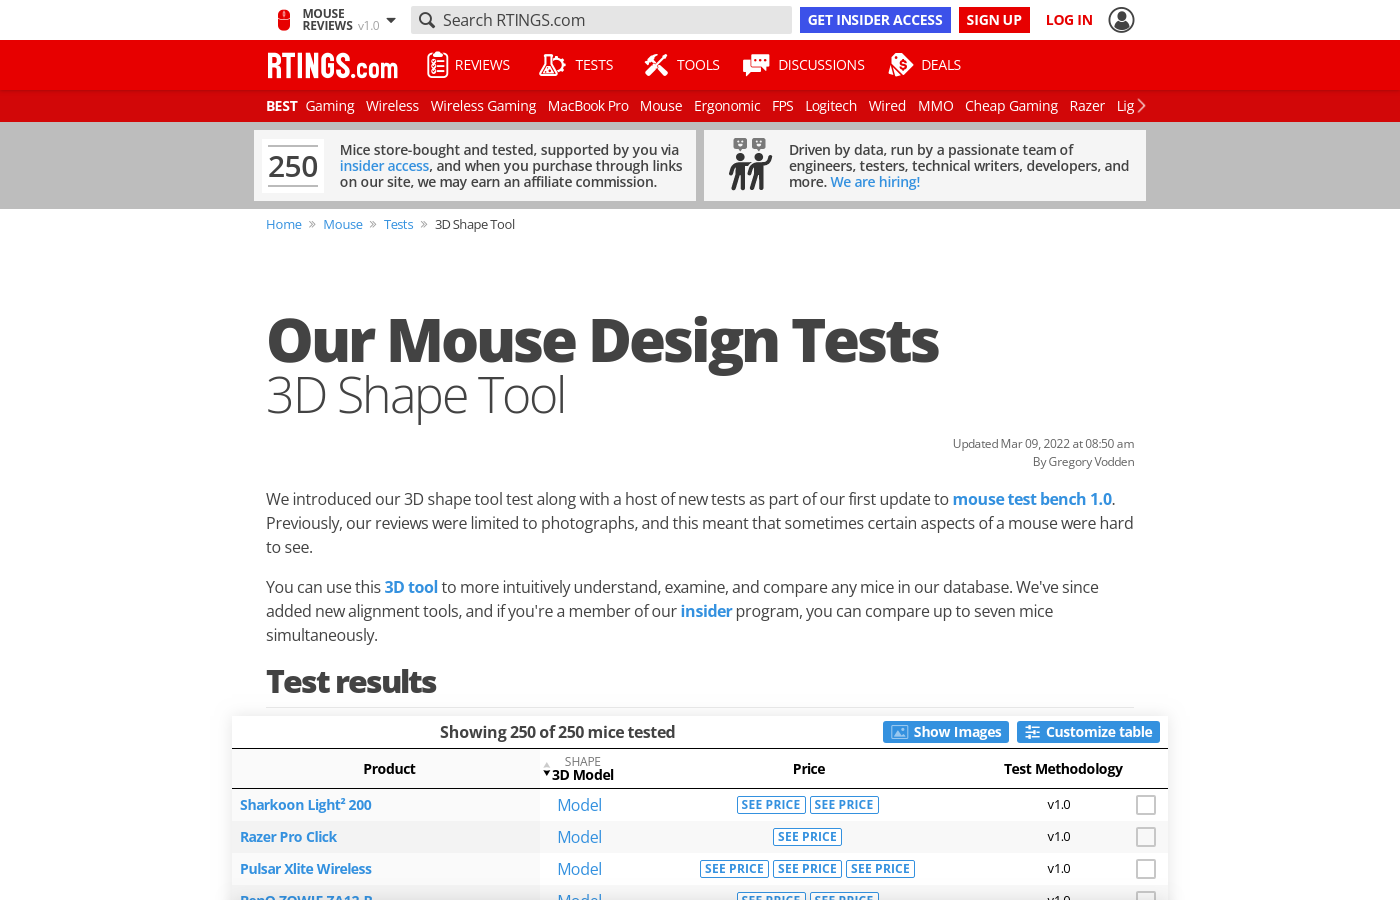 Test Article: 3D Shape Tool